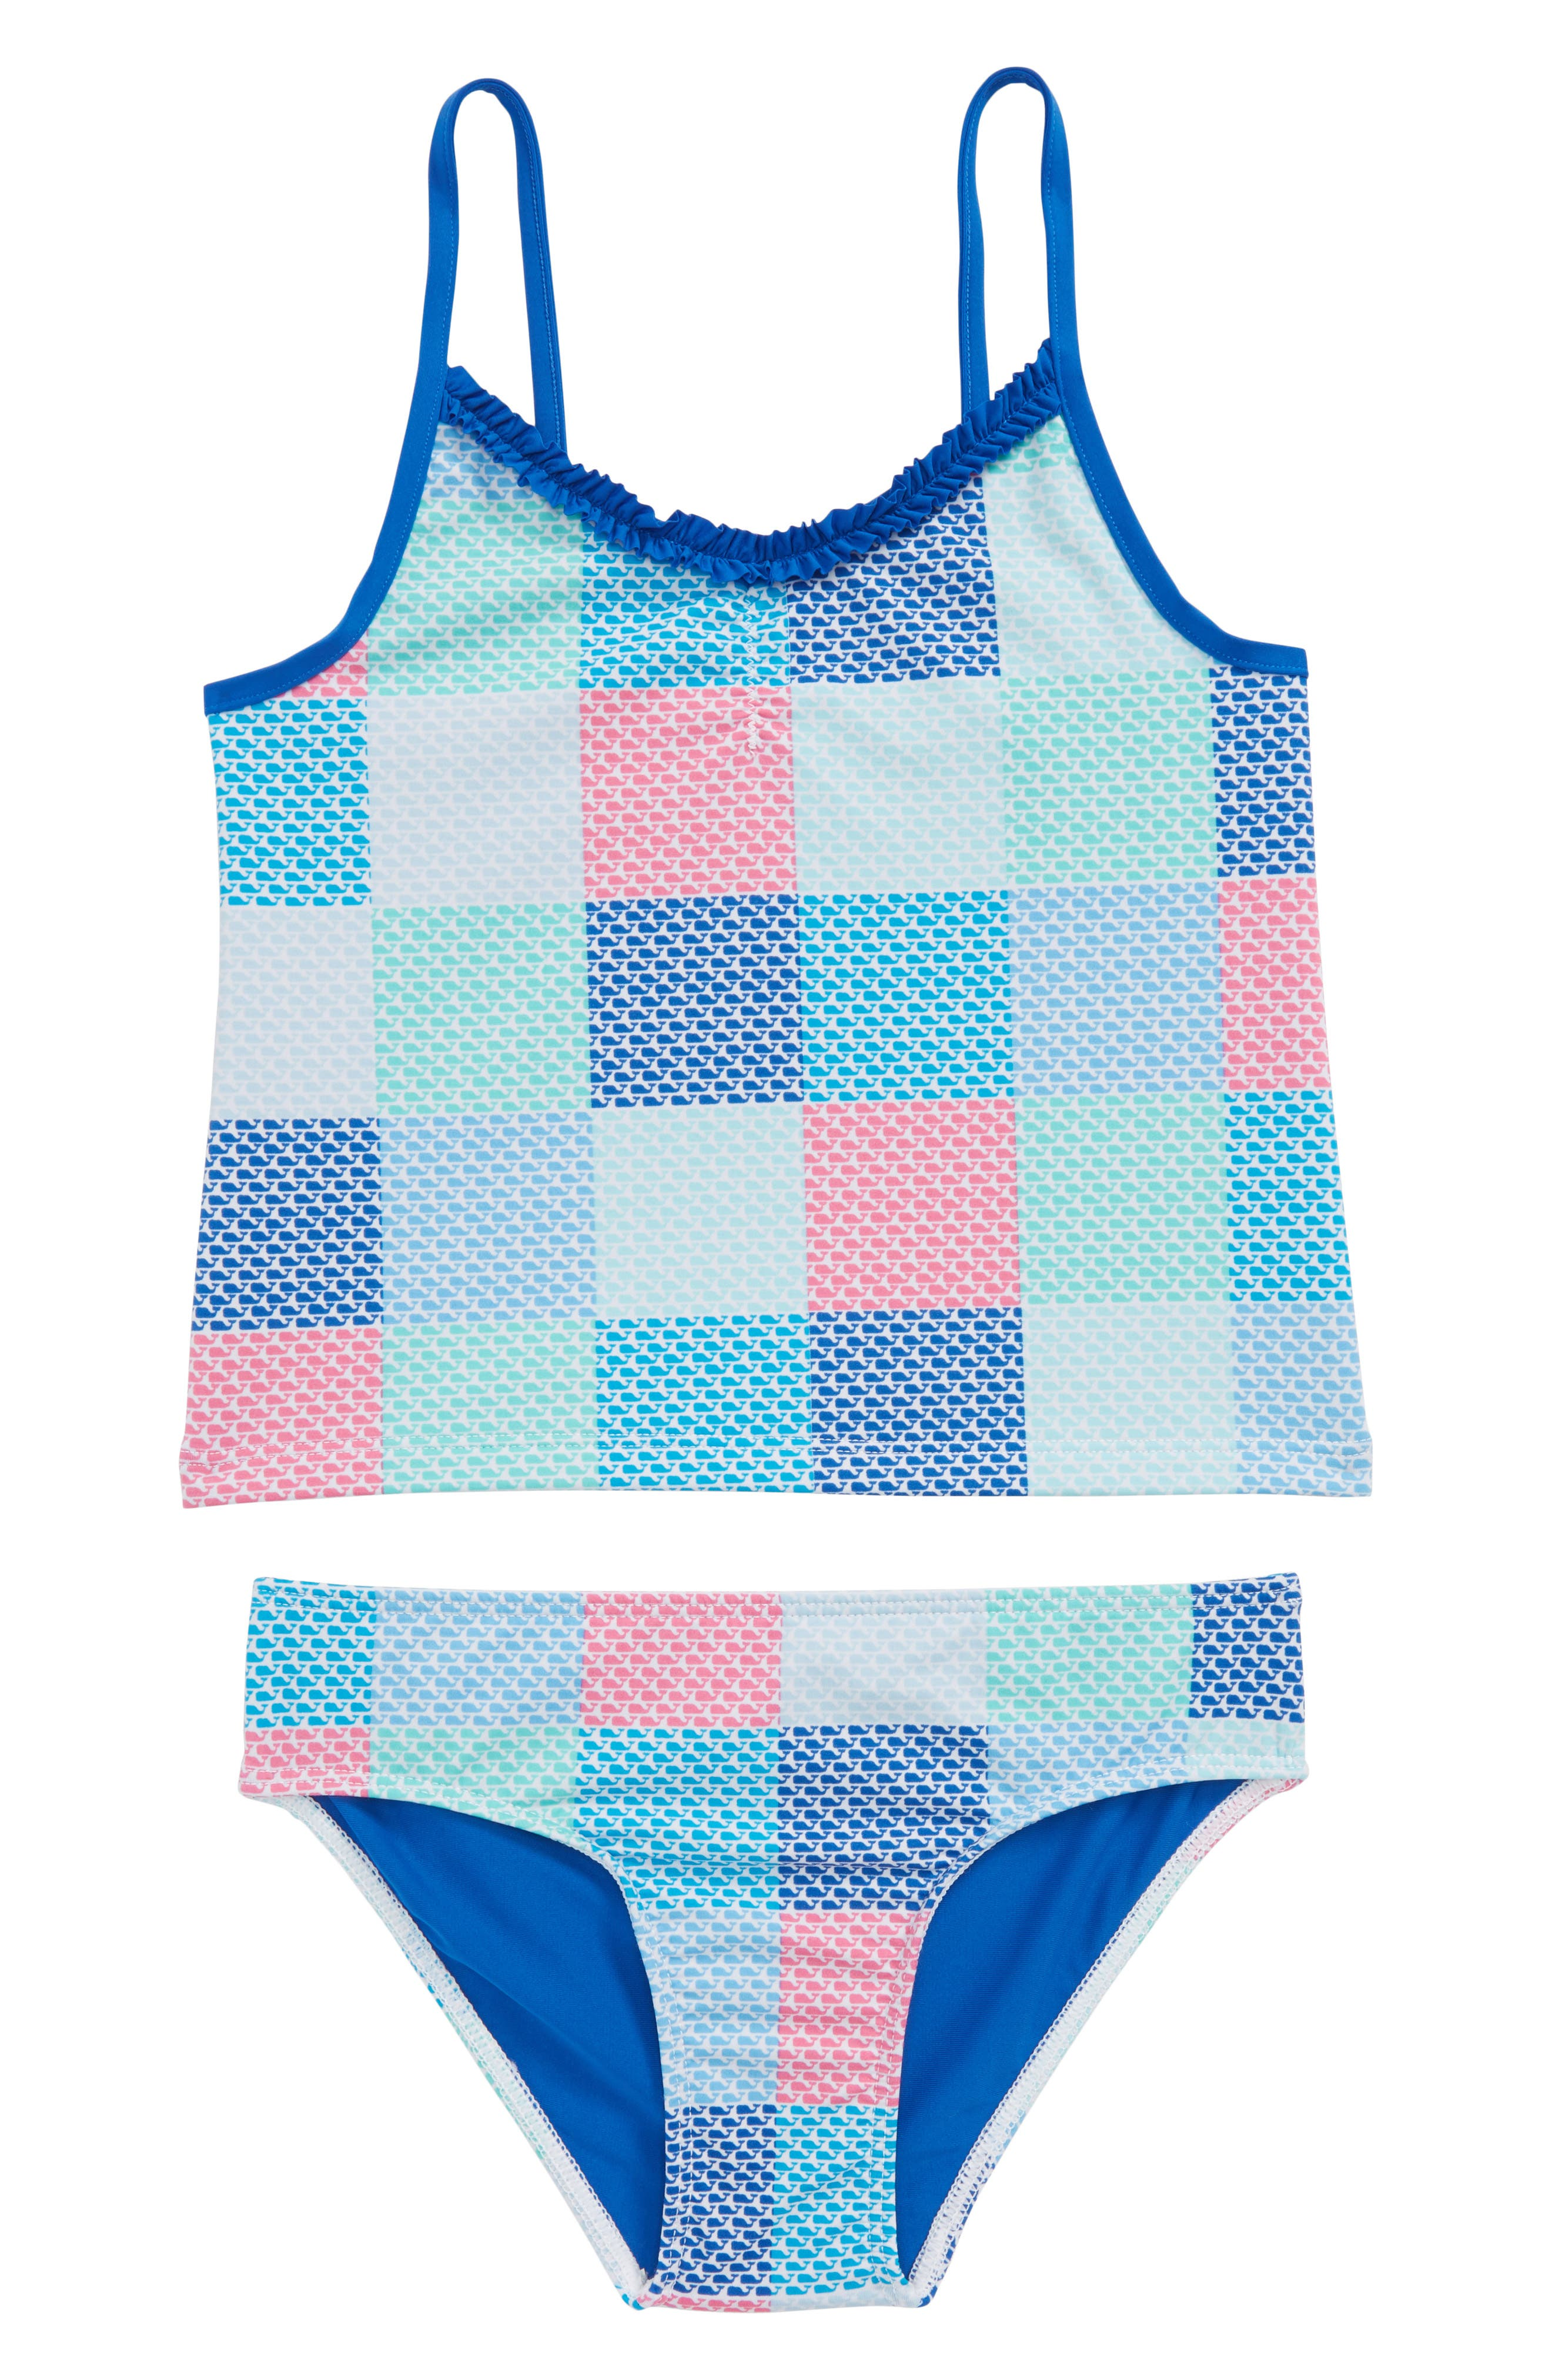 Patchwork Whale Two-Piece Tankini Swimsuit,                         Main,                         color, Cool Breeze